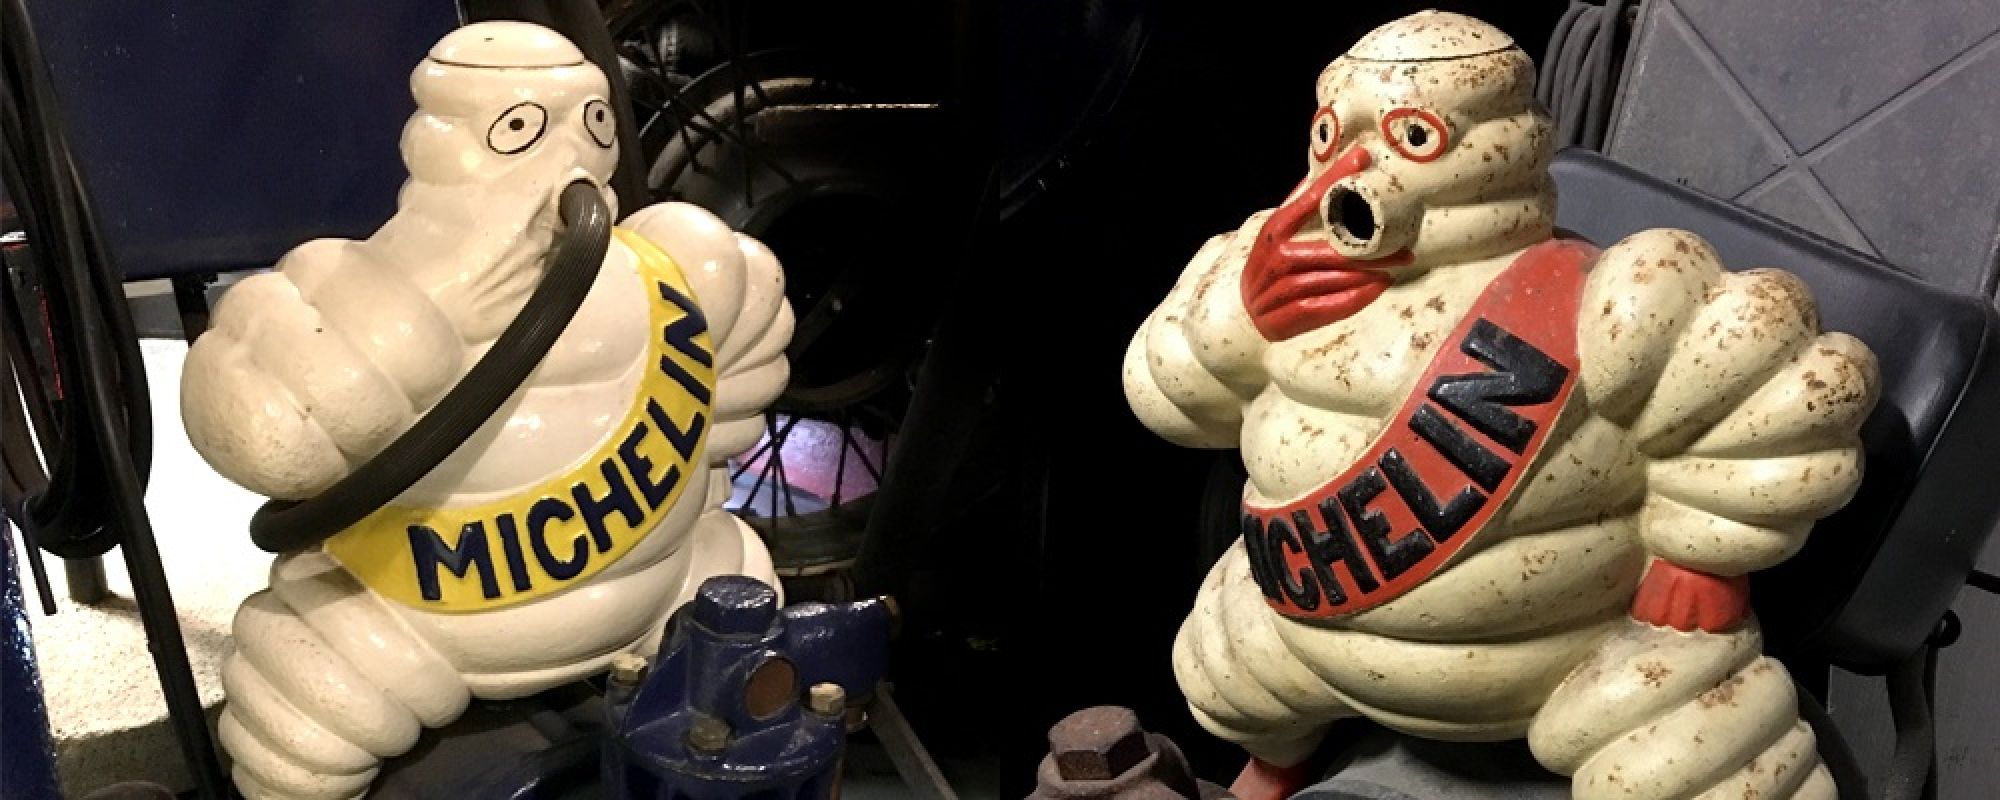 Two Michelin men exhibits housed in the museum